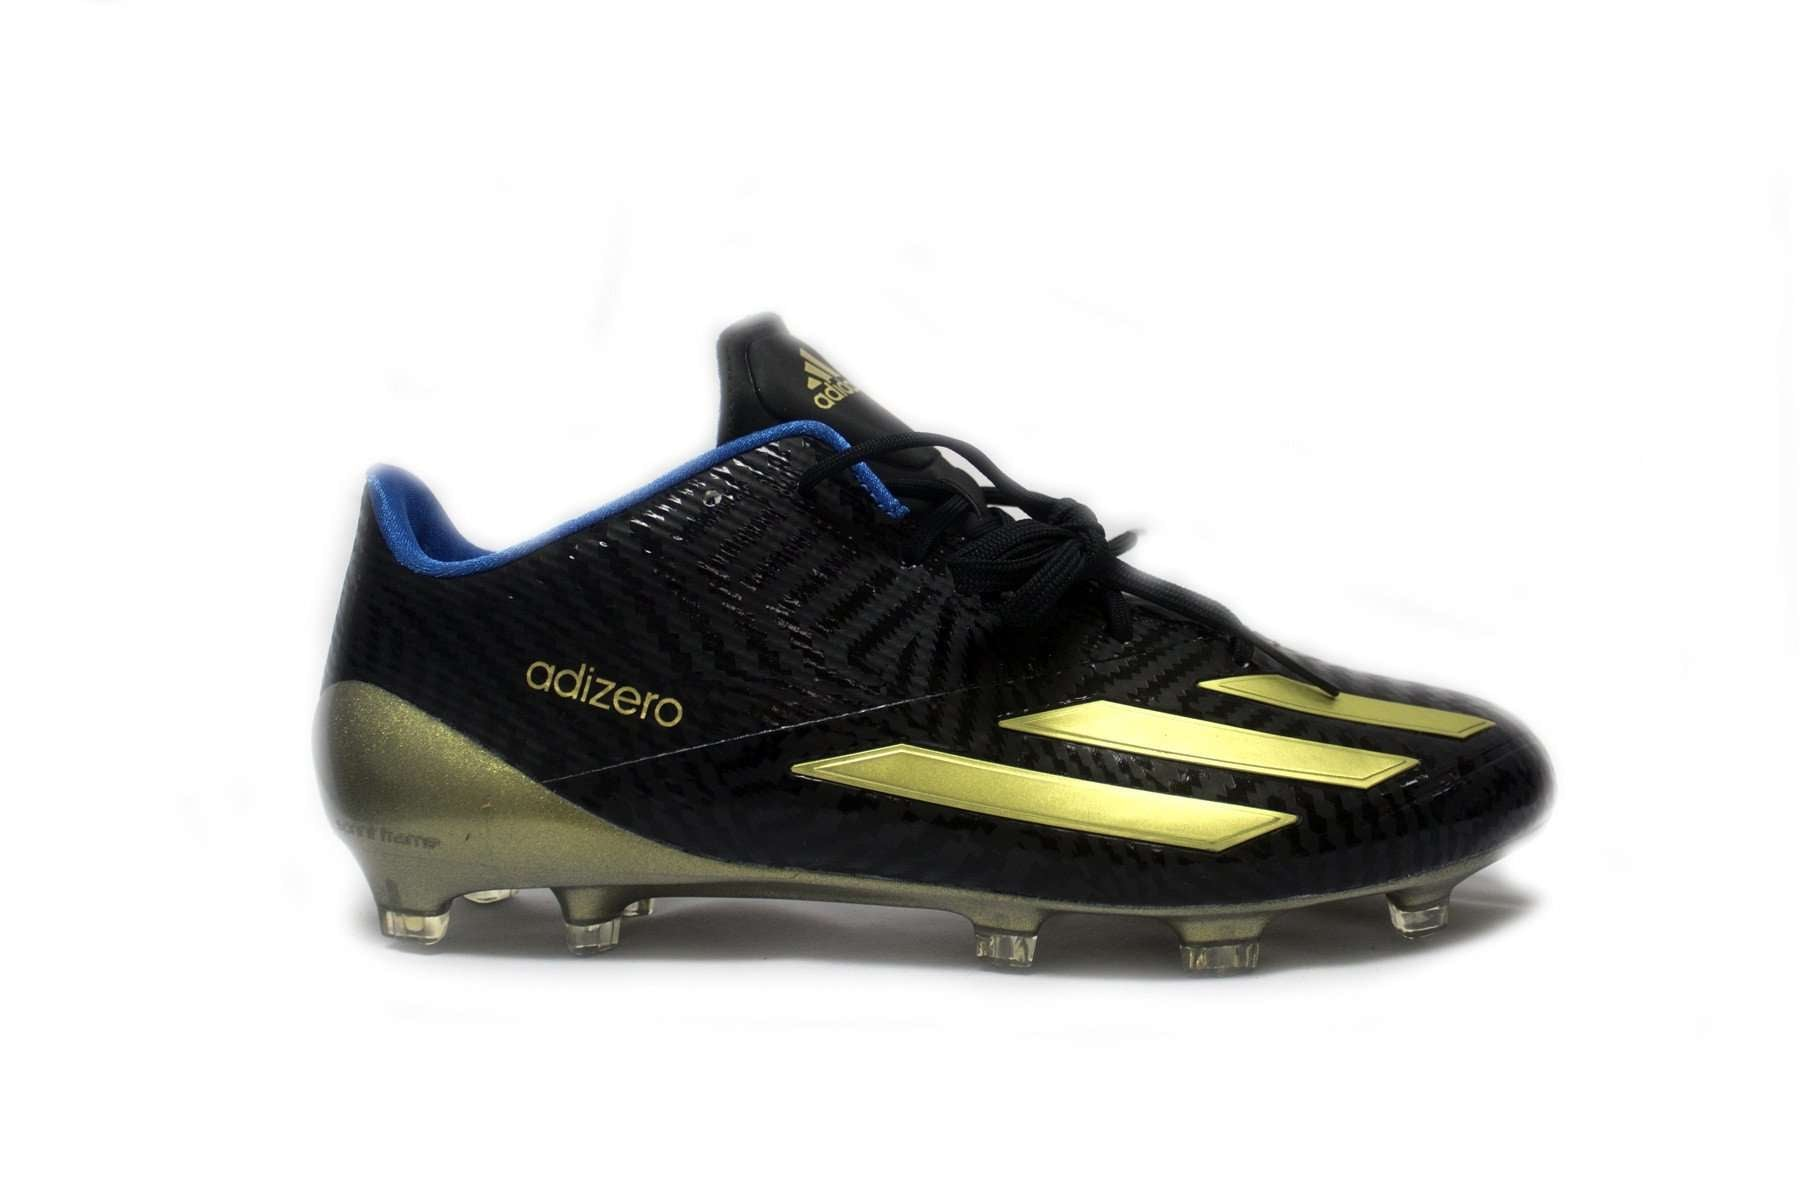 de75339f0f0 adidas Men s SM adizero 5-Star 5.0 X SP Low Football Cleats - League  Outfitters